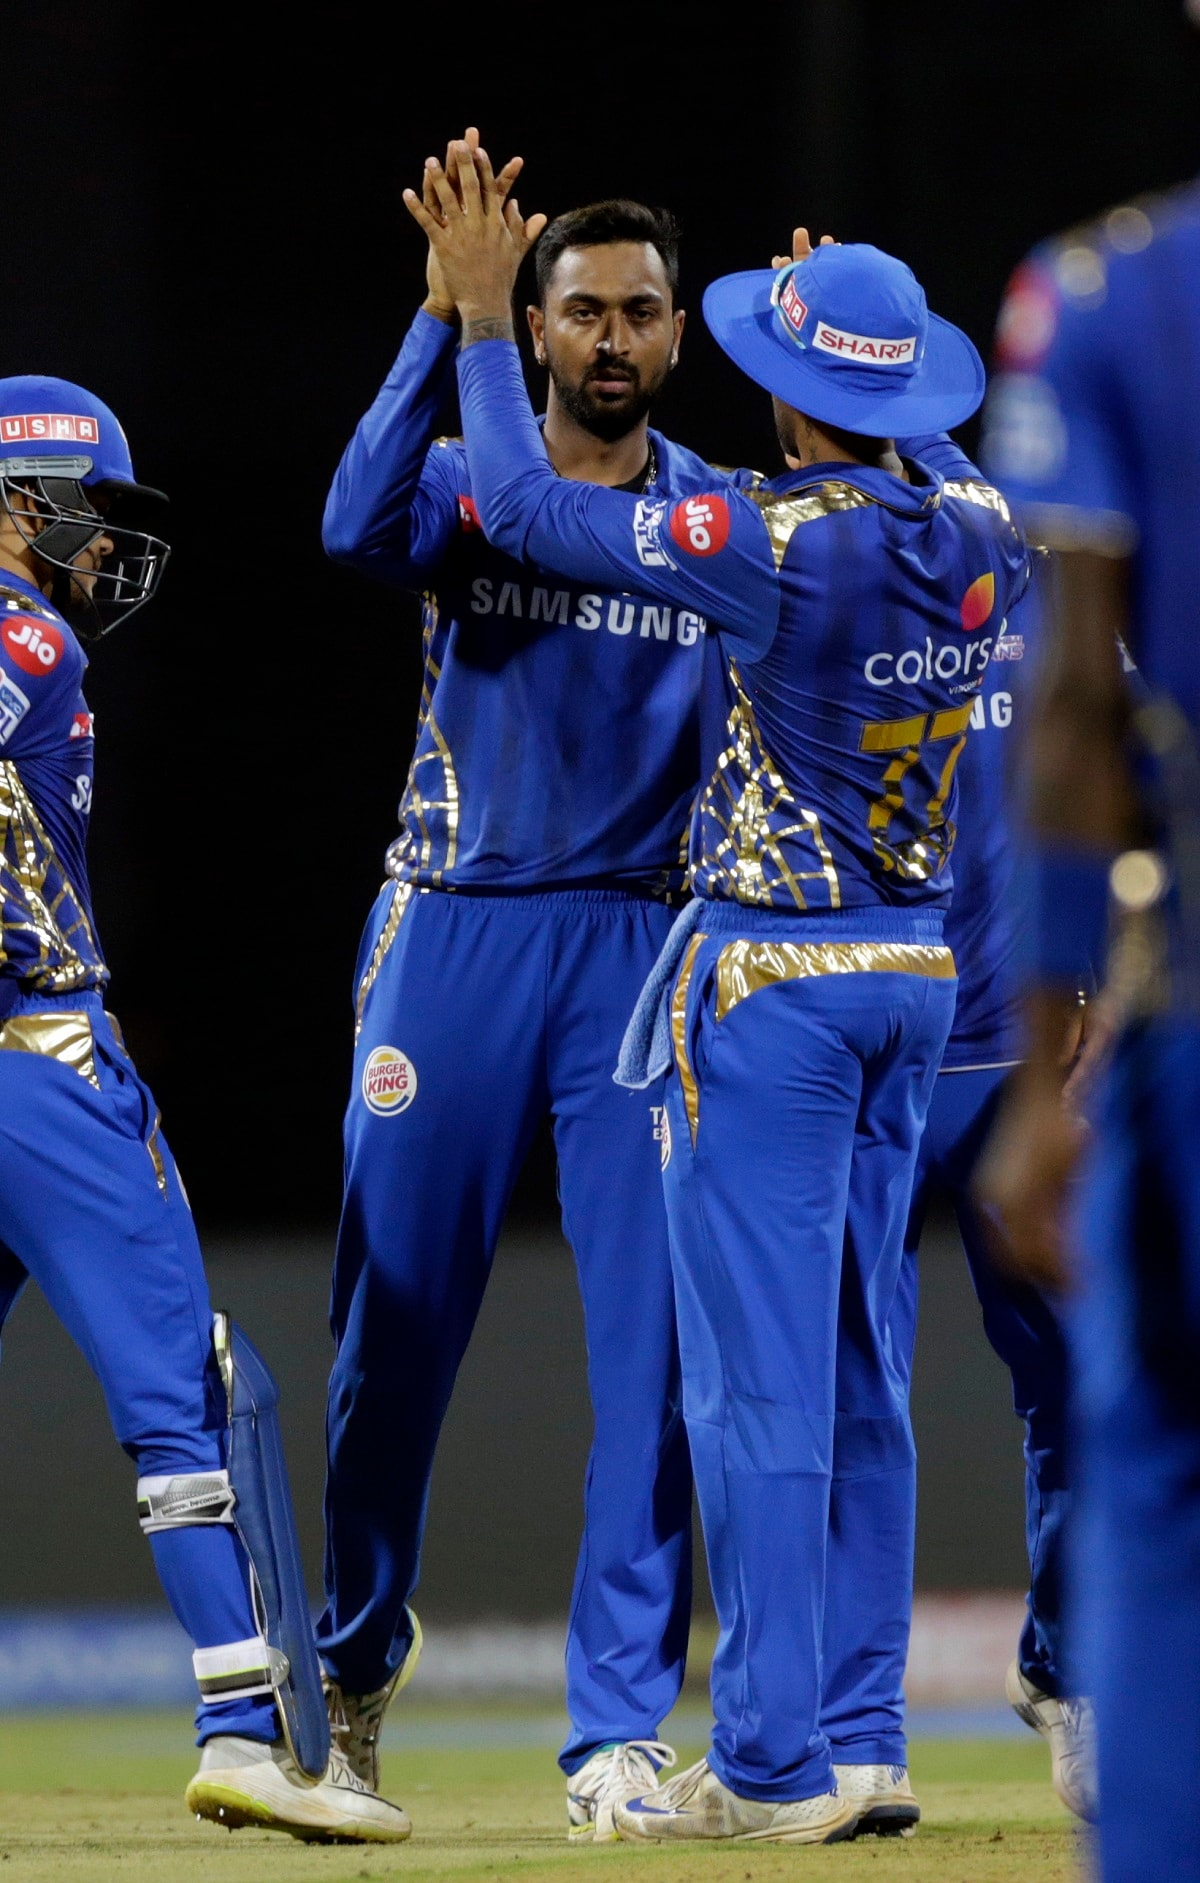 Mumbai Indians' Krunal Pandya celebrates the dismissal of Rajasthan Royals' Liam Livingstone's during the VIVO IPL T20 cricket match between Mumbai Indians and Rajasthan Royals. (AP Photo/Rajanish Kakade)